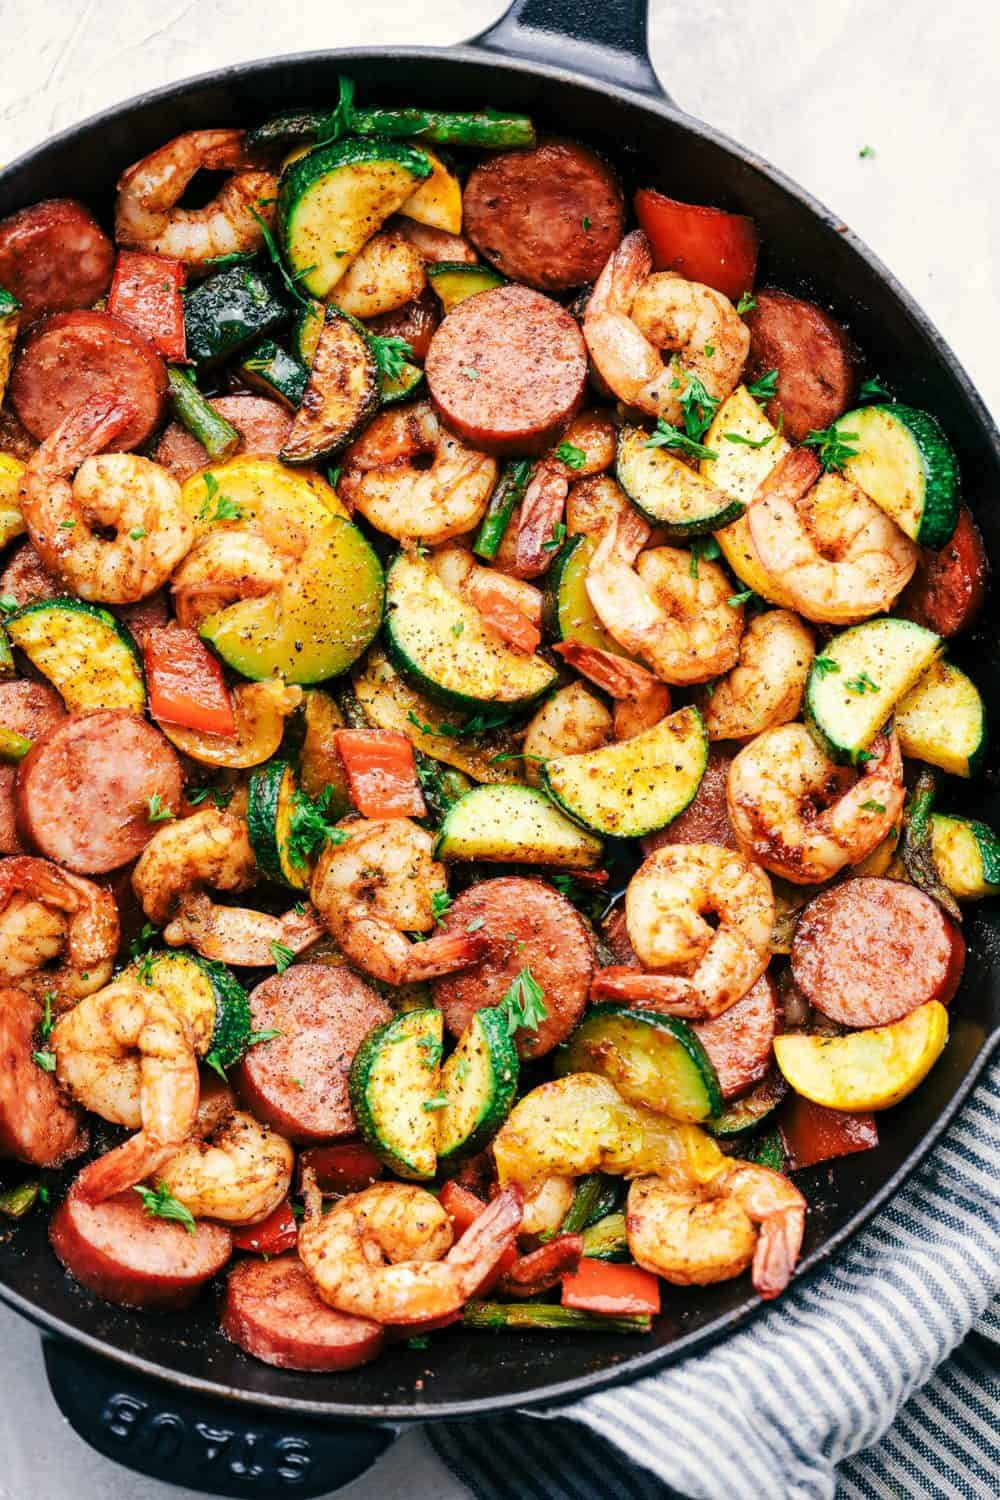 2. Cajun Shrimp and Sausage Vegetable Skillet